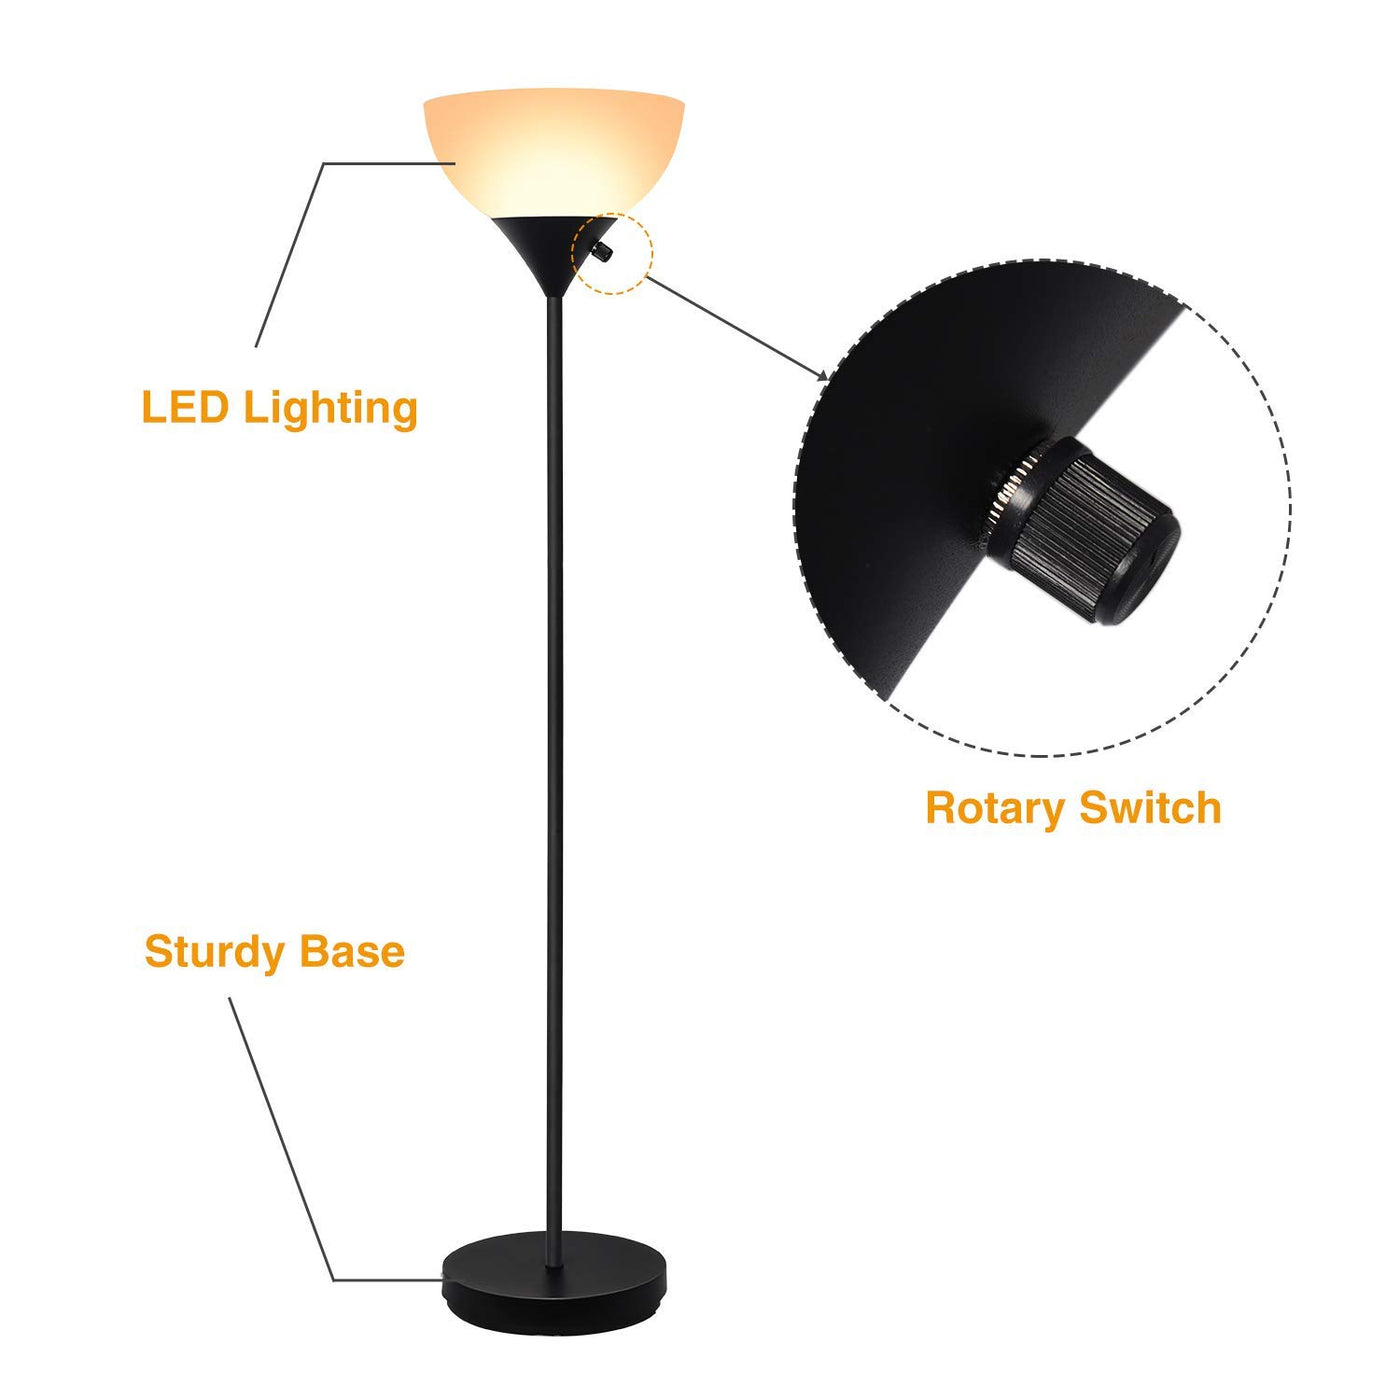 Sunllipe Led Torchiere Floor Lamp 70 Energy Saving Sturdy